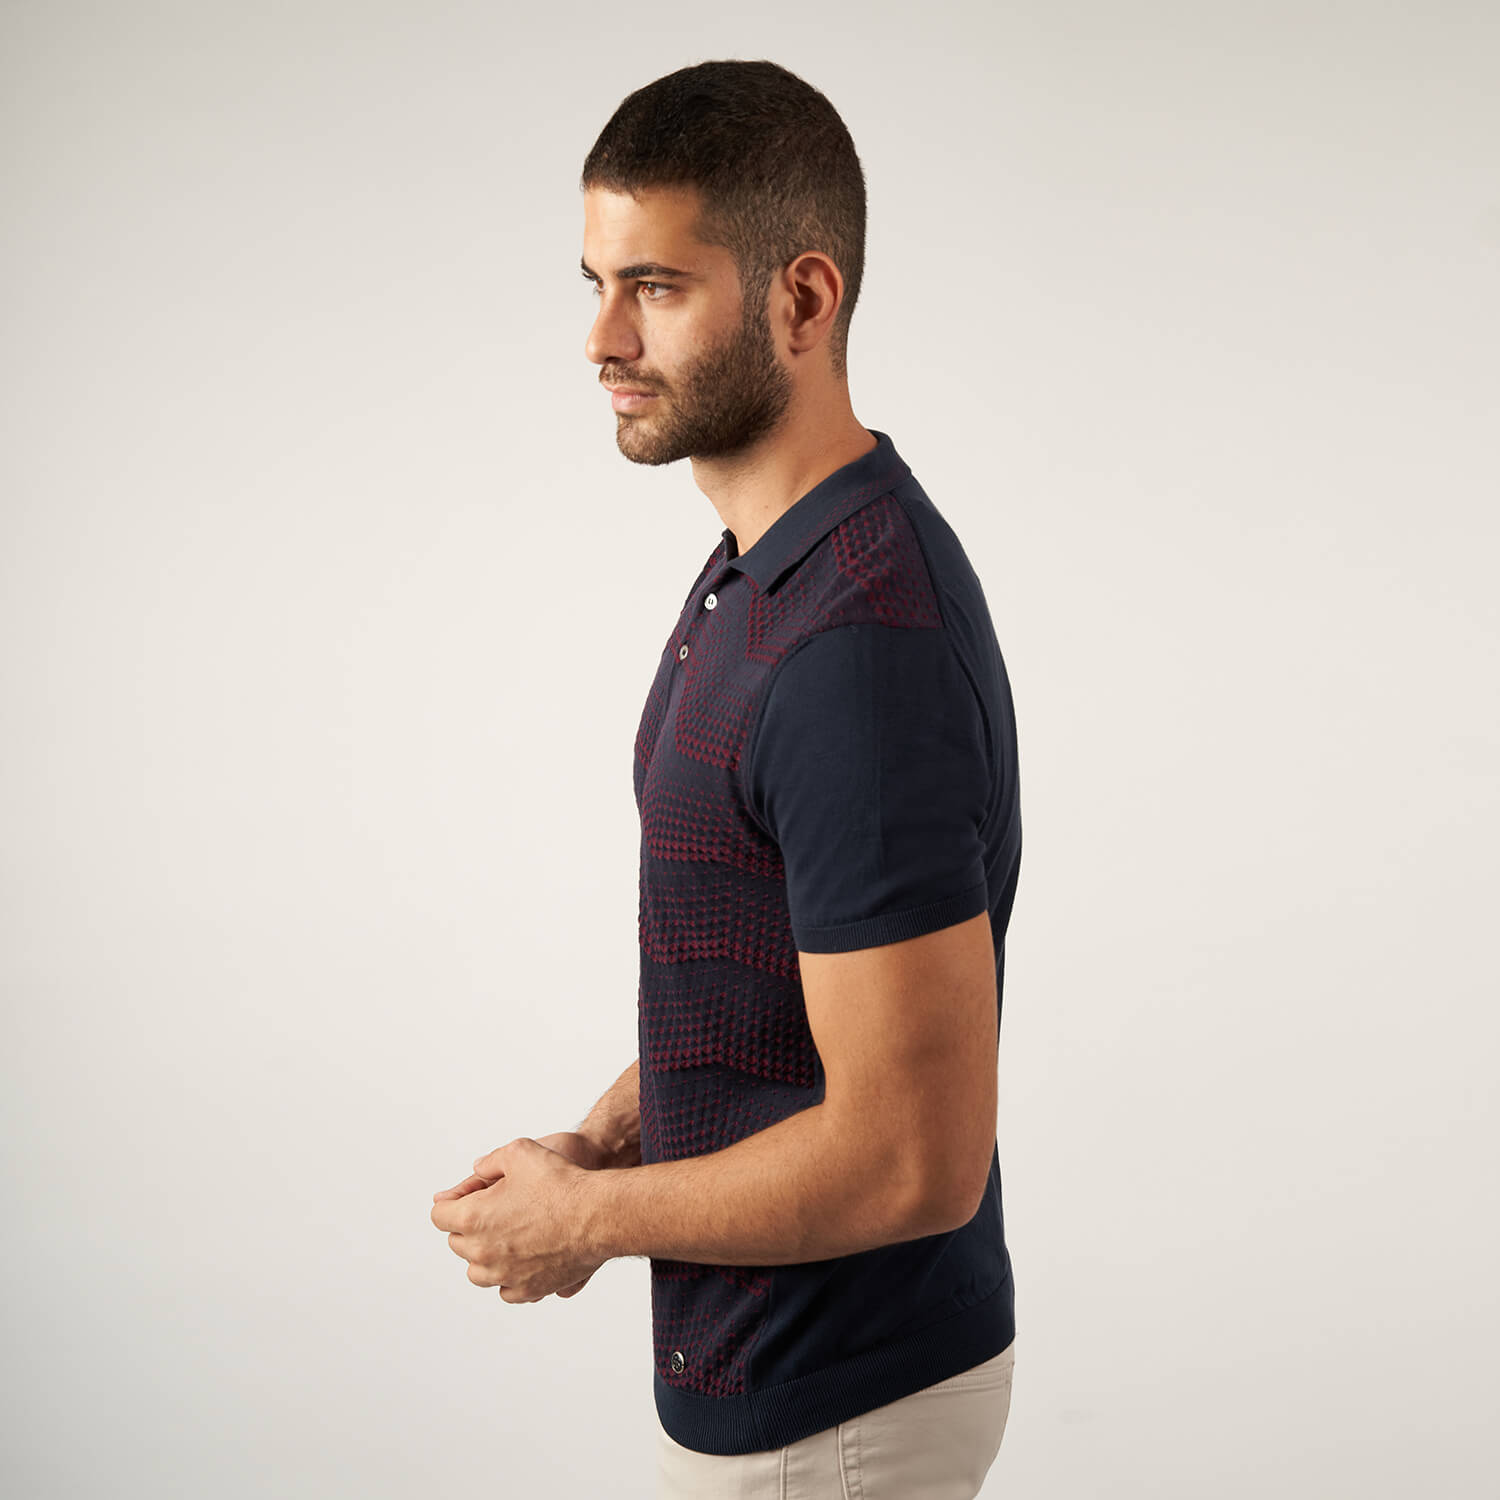 soft polo t shirts for men